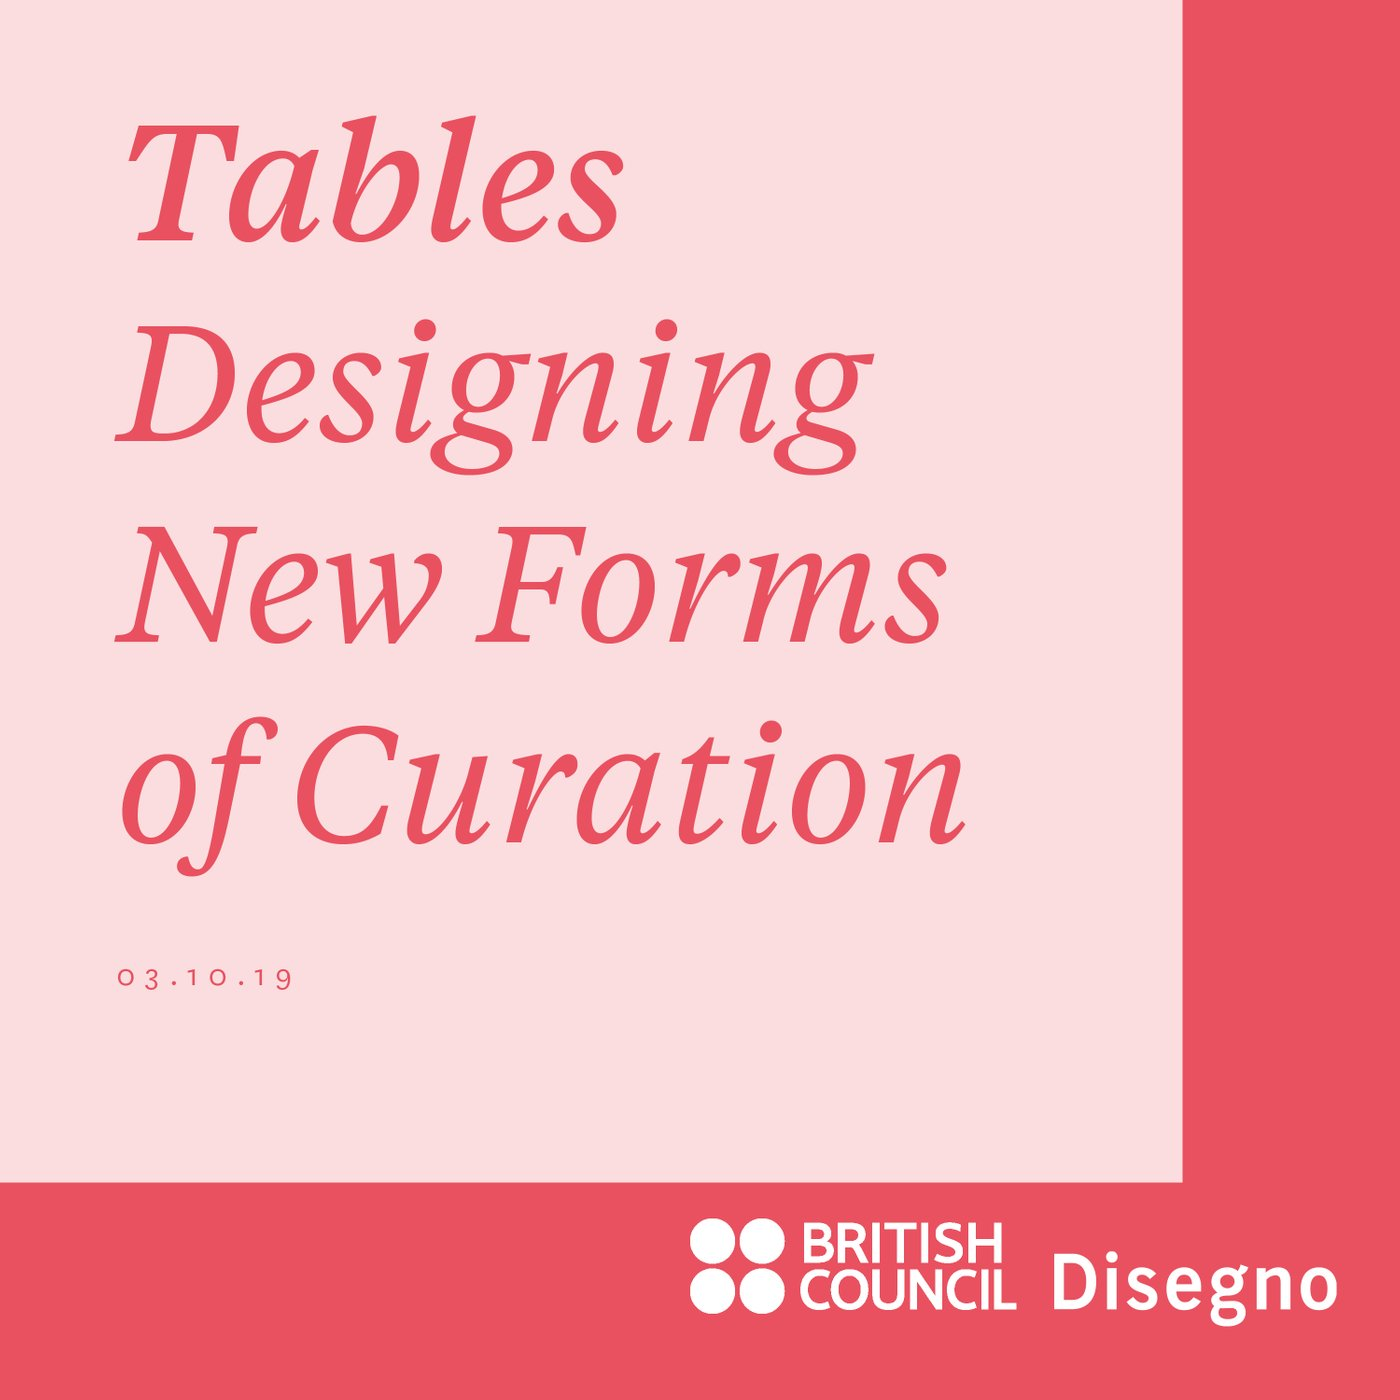 Tables: Designing New Forms of Curation